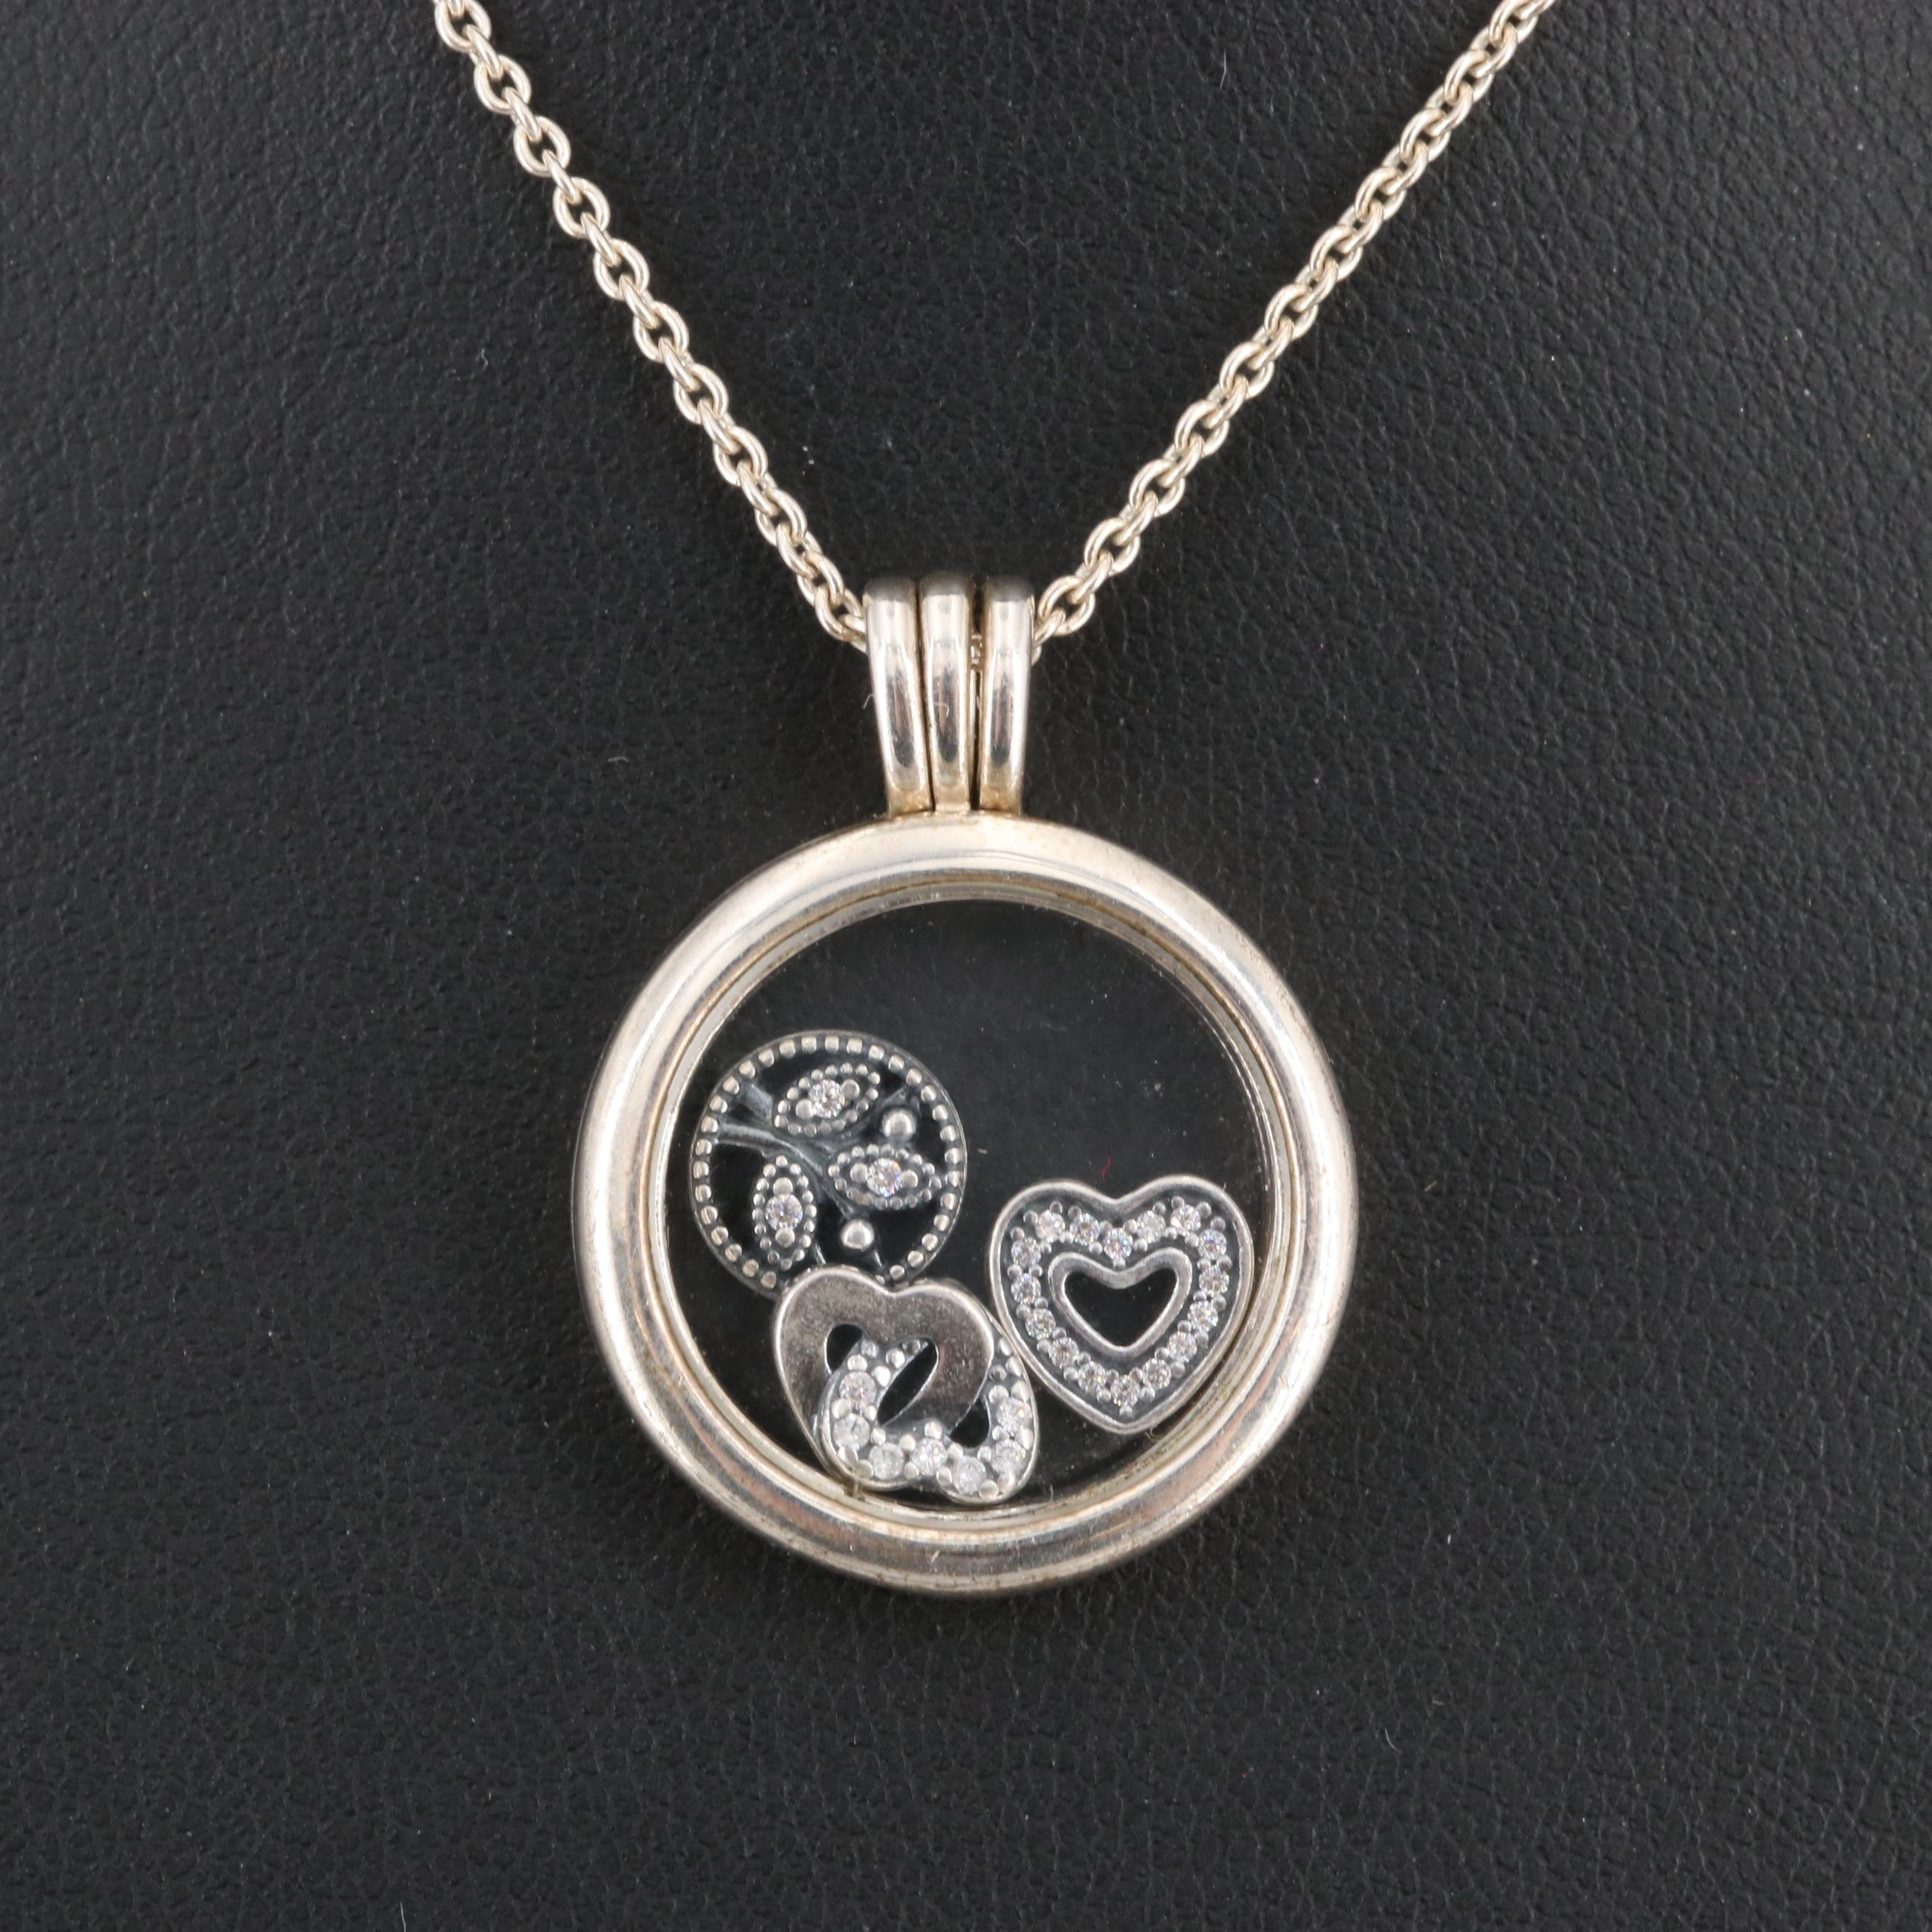 Pandora Sterling Silver Cubic Zirconia Necklace with Box